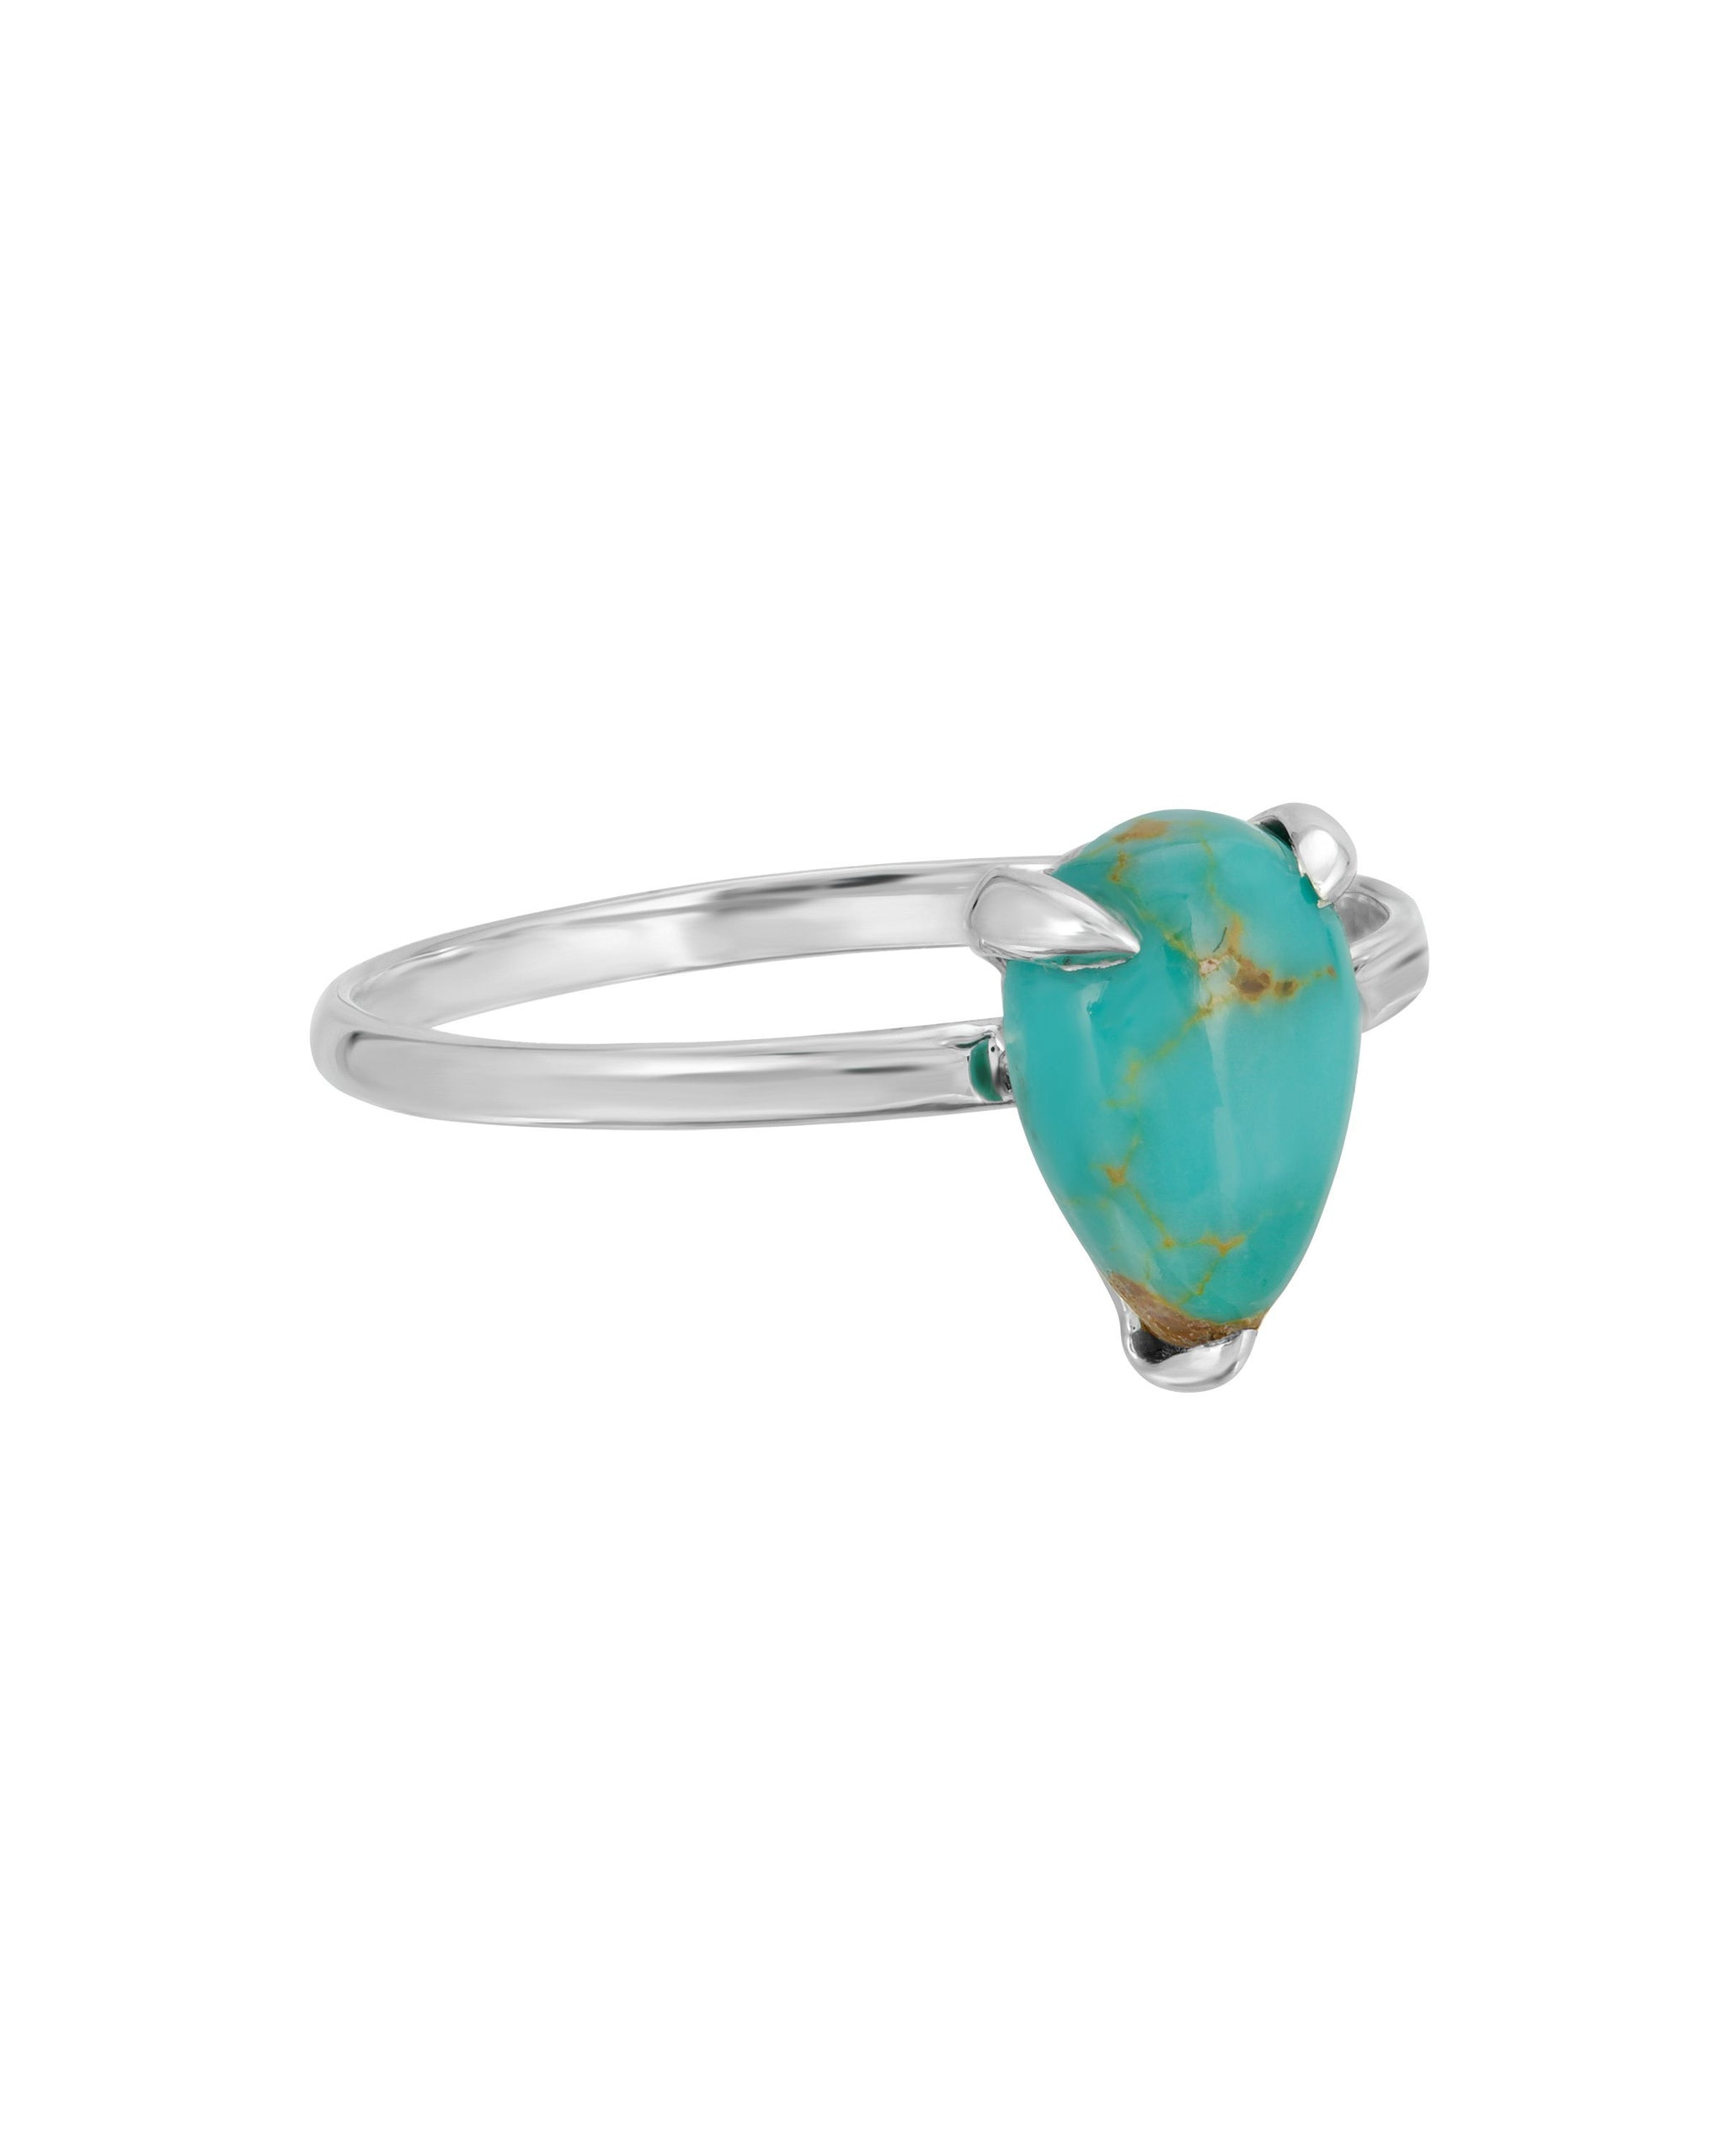 HALCYON RING - TURQUOISE + TOBACCO